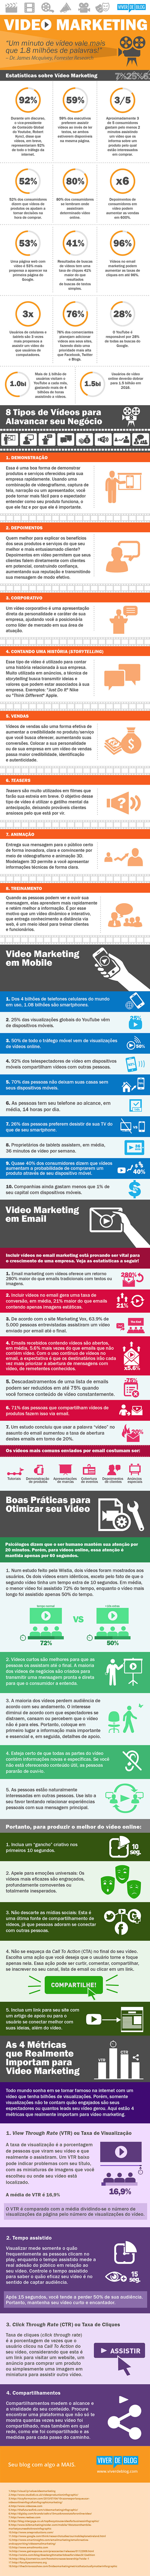 Infográfico Video Marketing